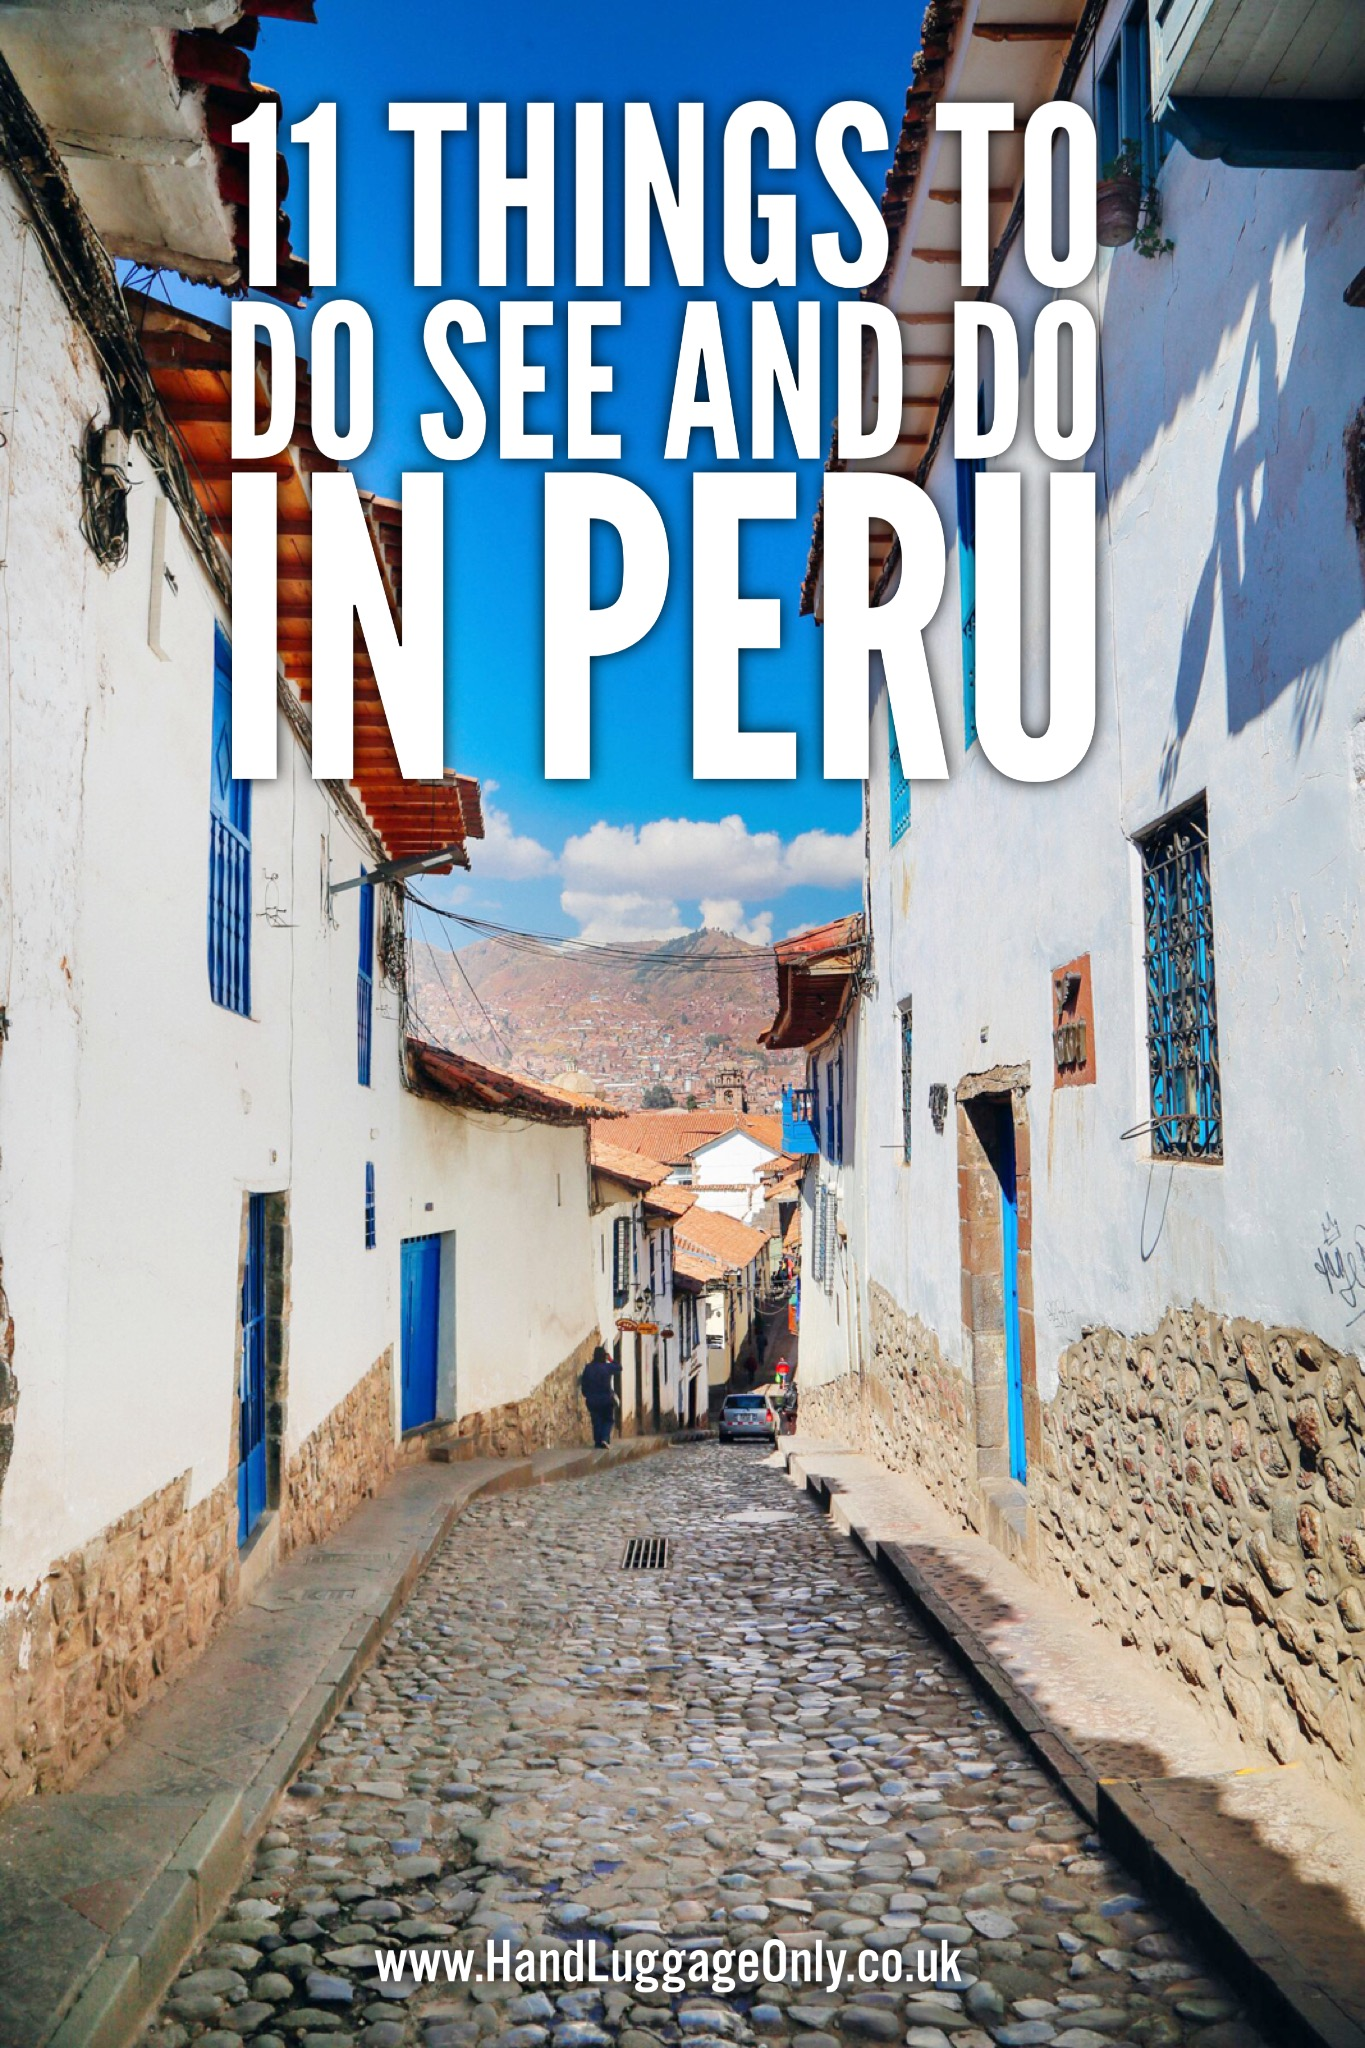 11 Things To Do And See In Peru (1)